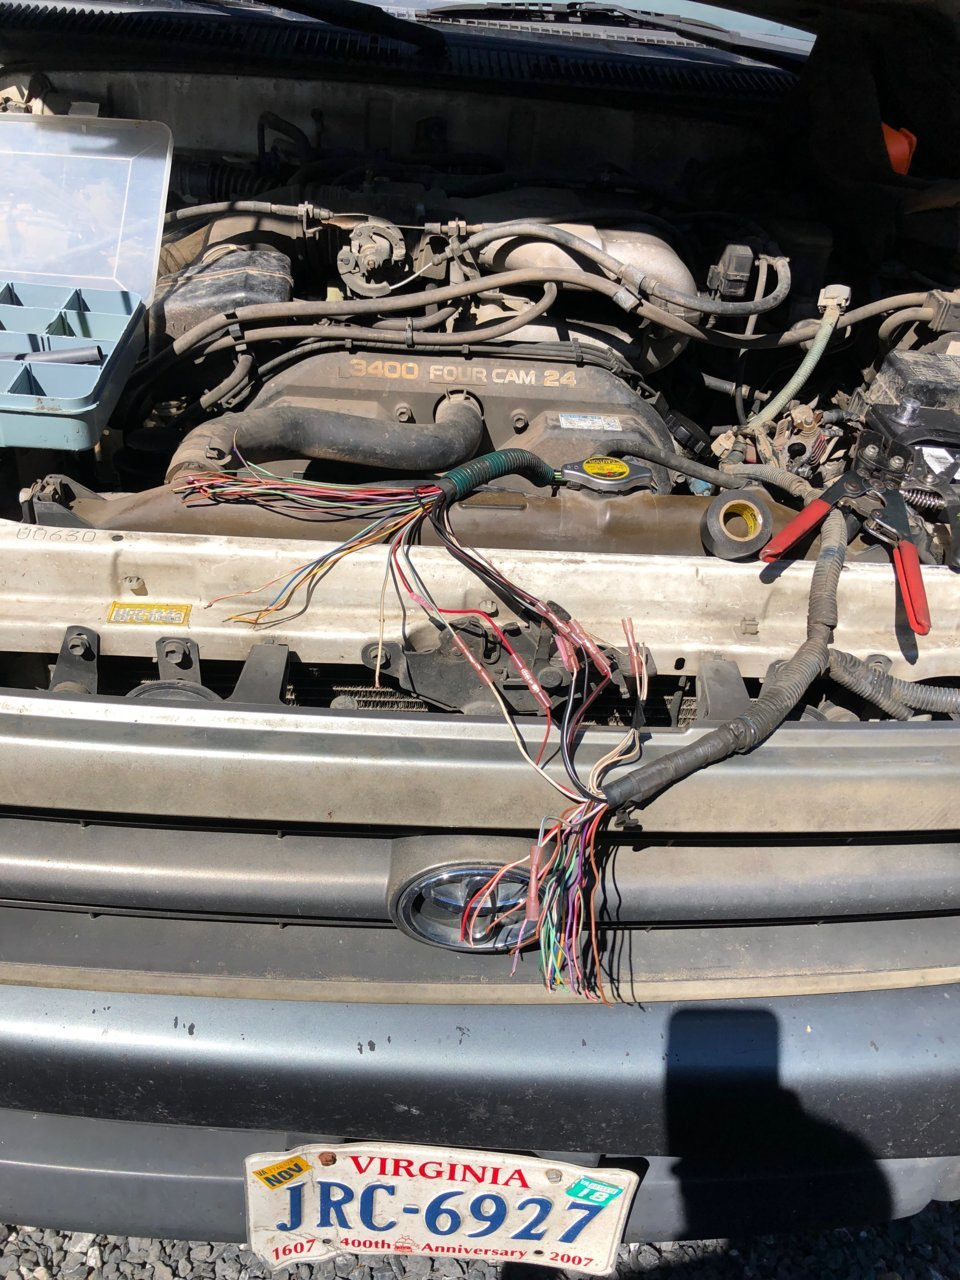 Wire harness ripped in 1/2. | Toyota 4Runner Forum [4Runners.com]4Runners.com